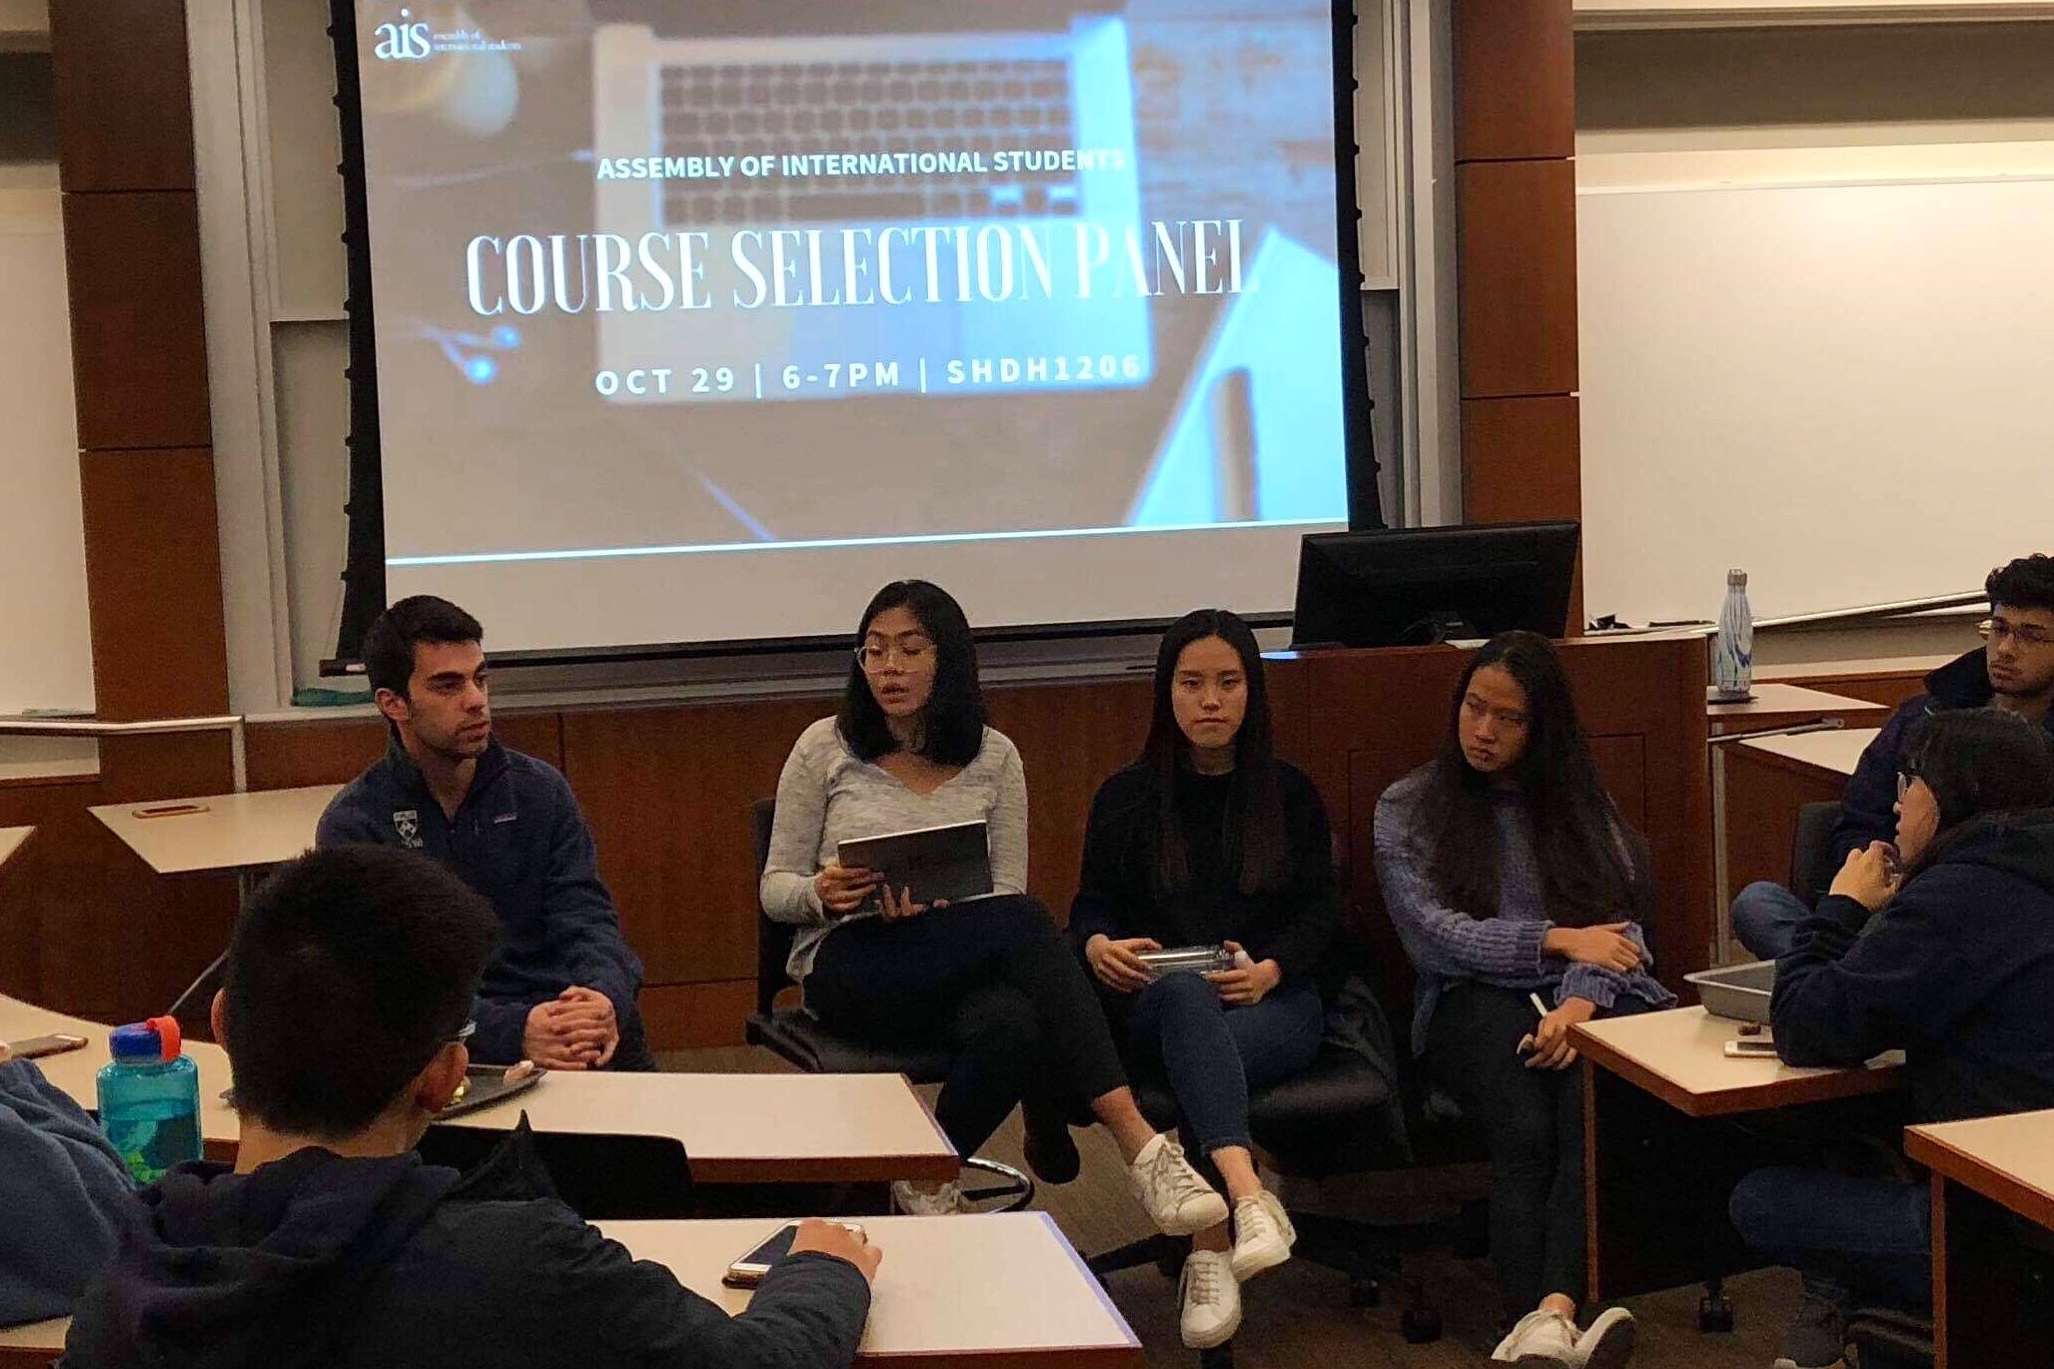 Course Selection Panel - AIS hosted its course selection panel that featured experienced upperclassmen from all the schools here at Penn to speak about registration, courses and other essential tips and tricks to create a perfect schedule.